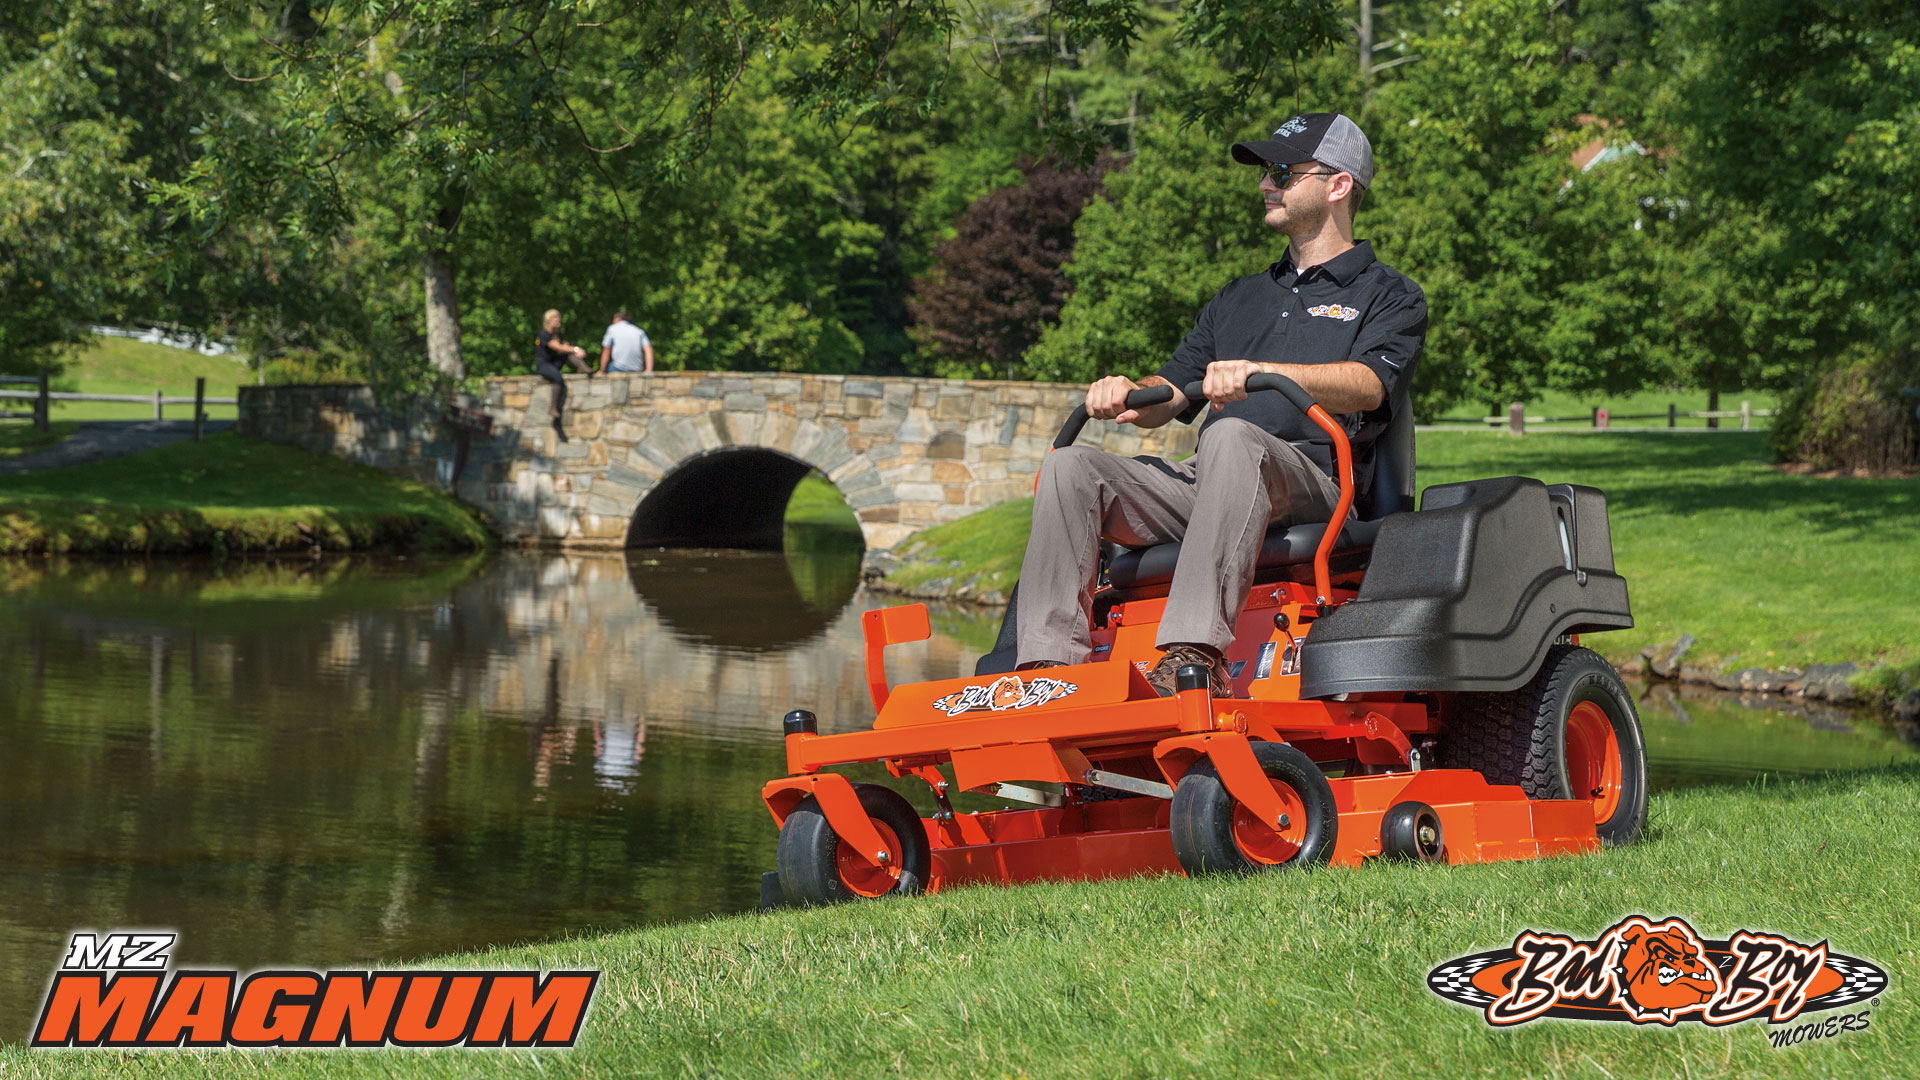 Bad Boy MZ Magnum 2016 Zero Turm Mower